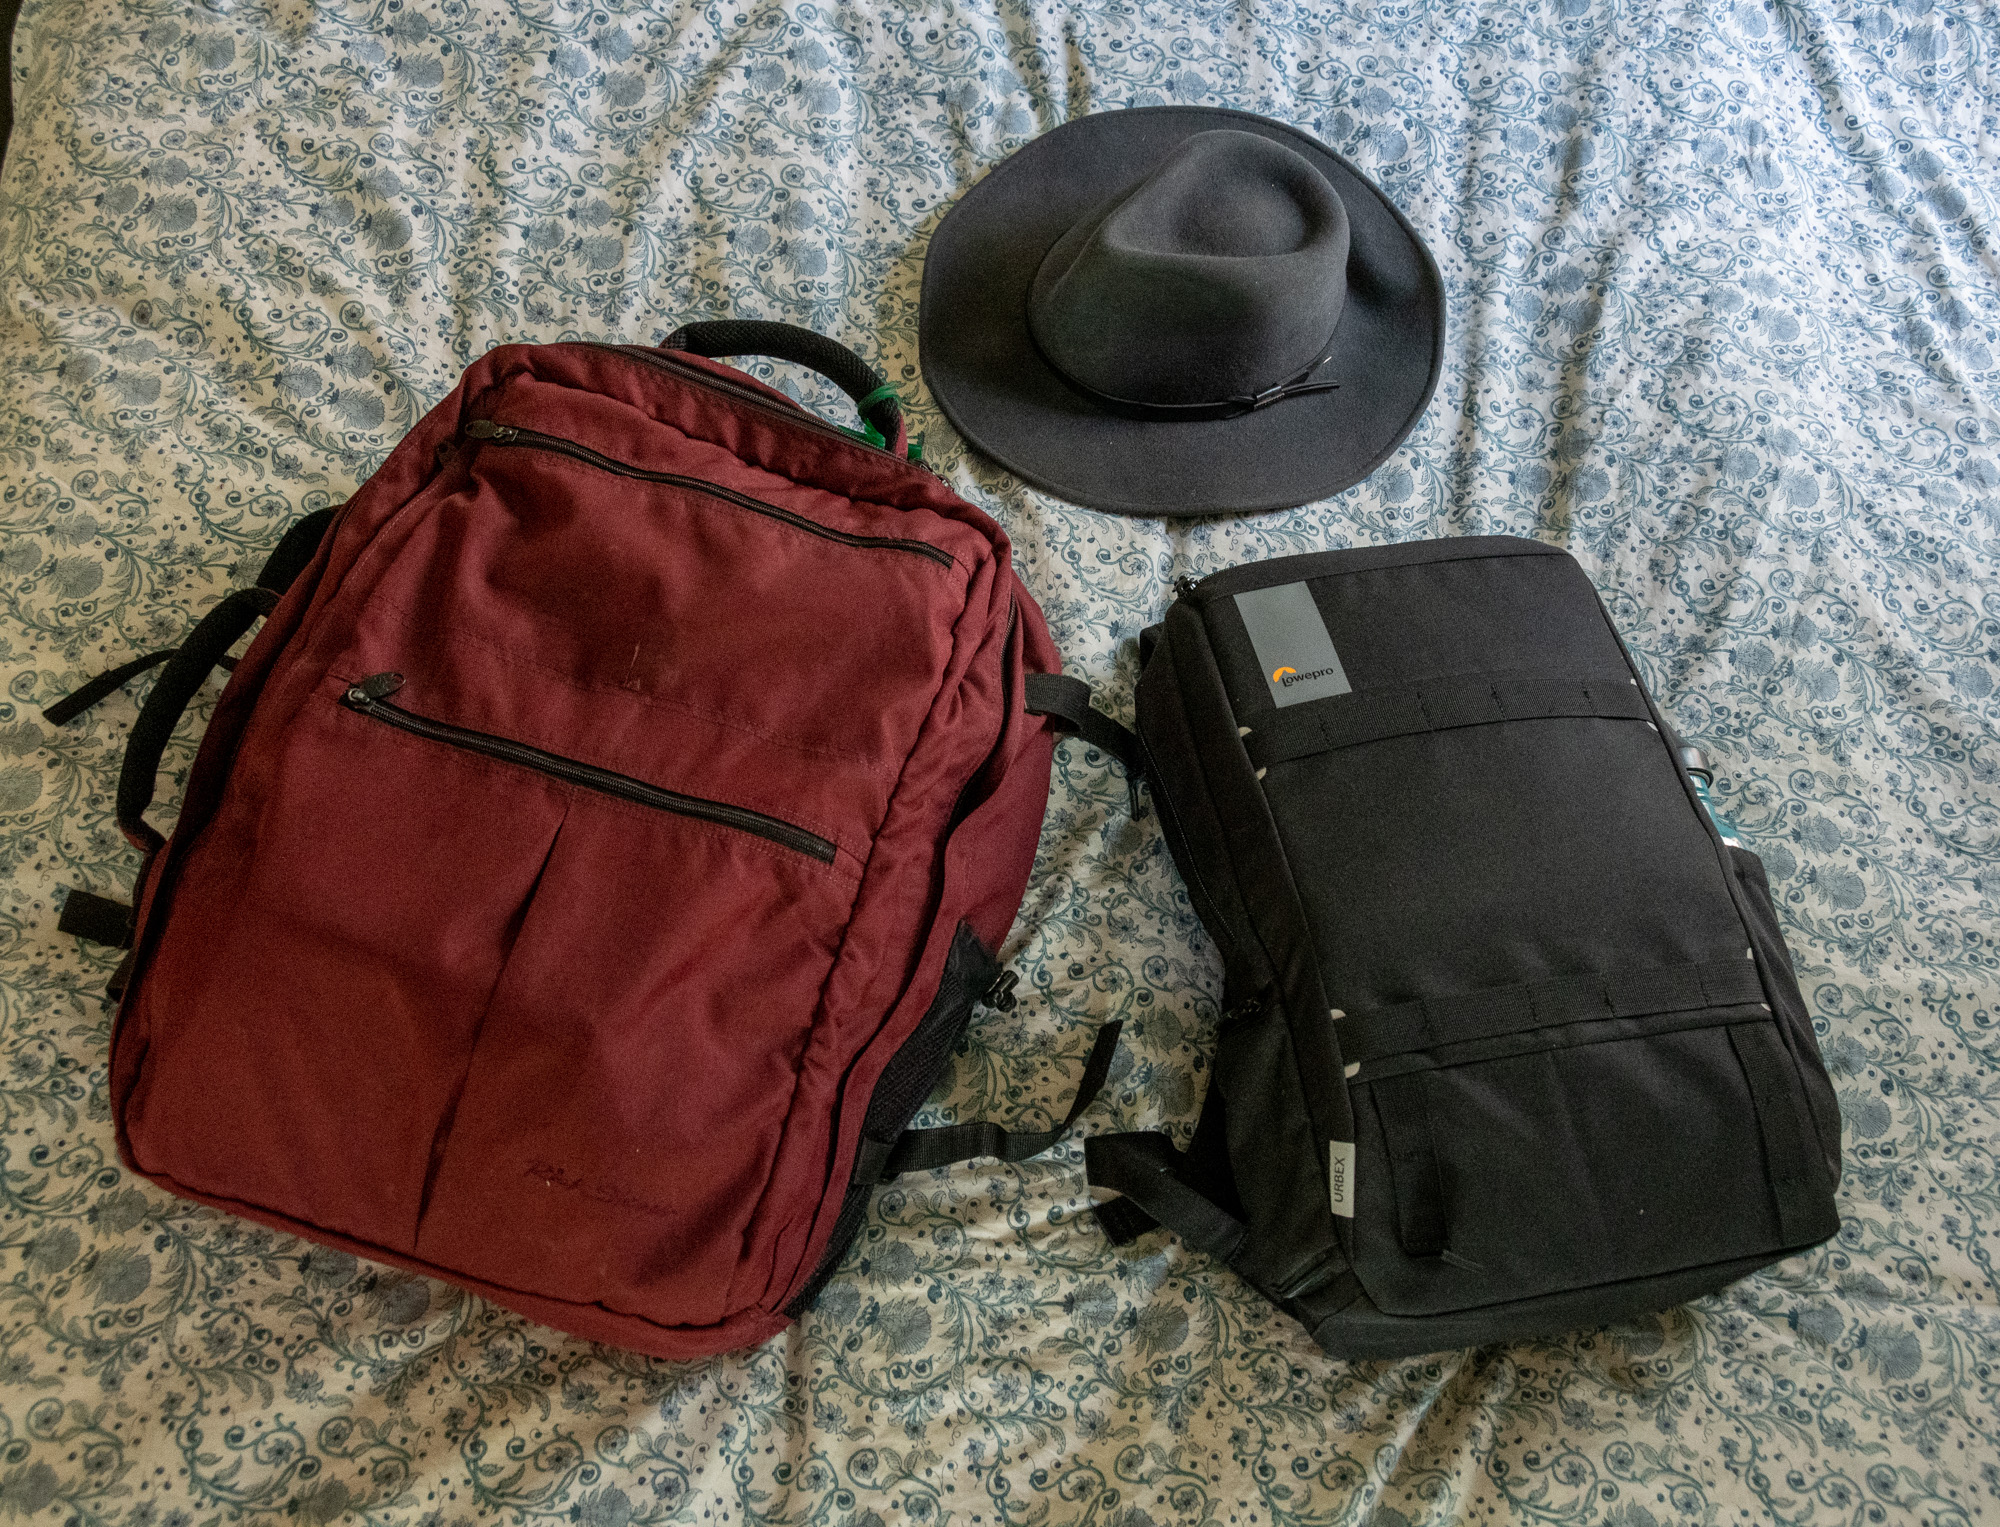 2 pieces of luggage and a hat, packed and ready to travel